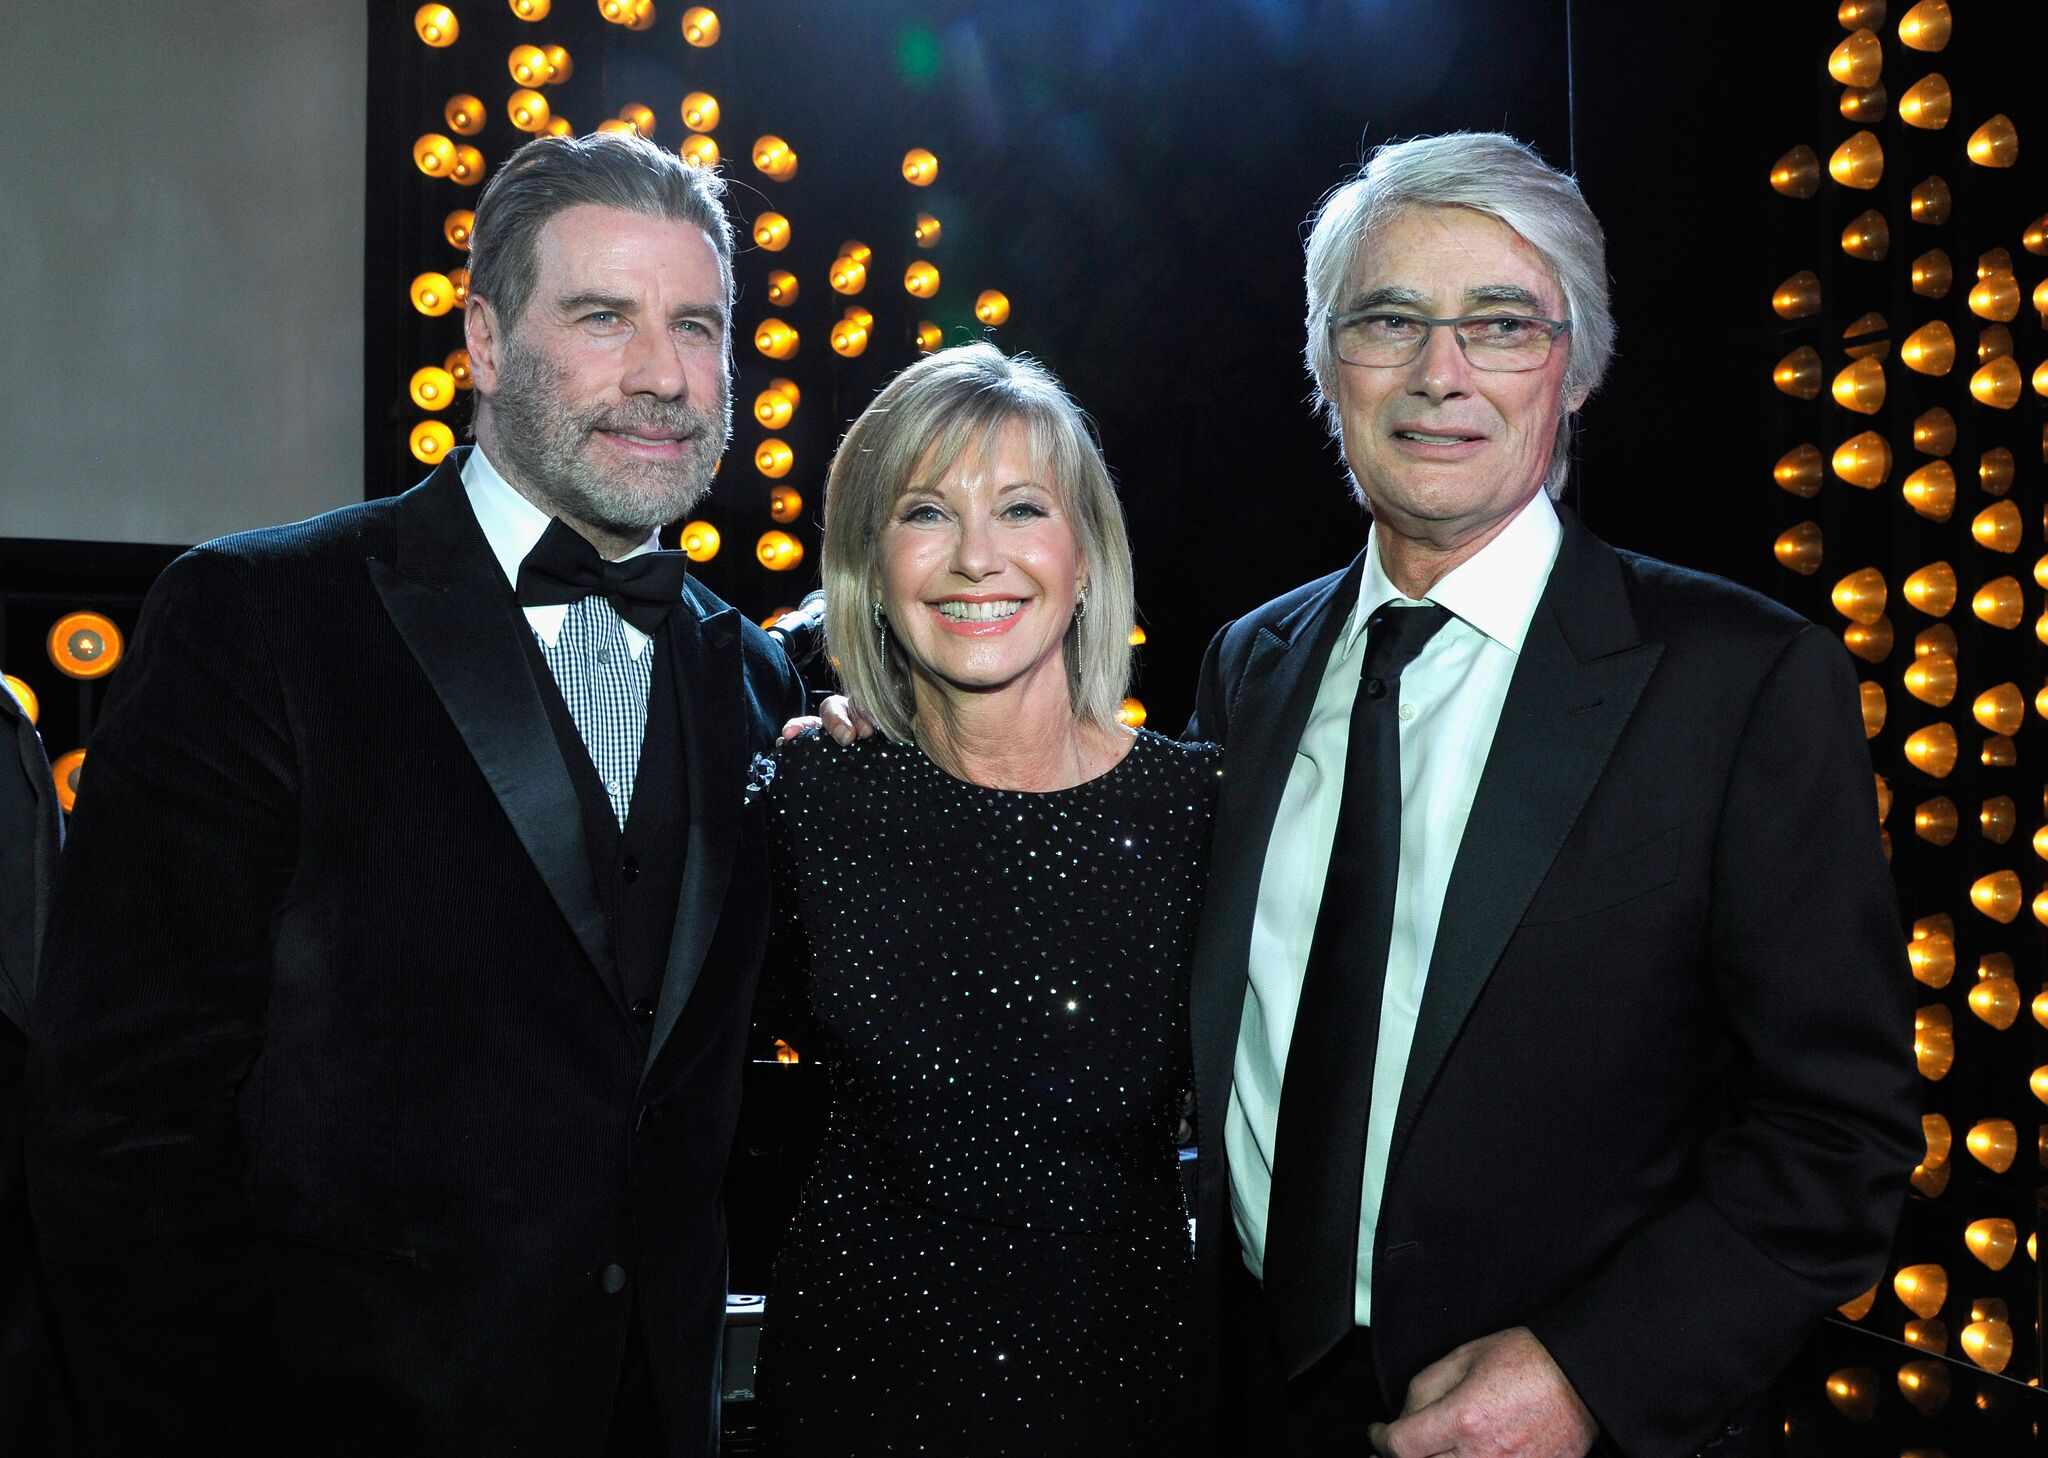 John Travolta, Olivia Newton John and Honoree John Farrar speak onstage during the 2018 G'Day USA Black Tie Gala | Getty Images